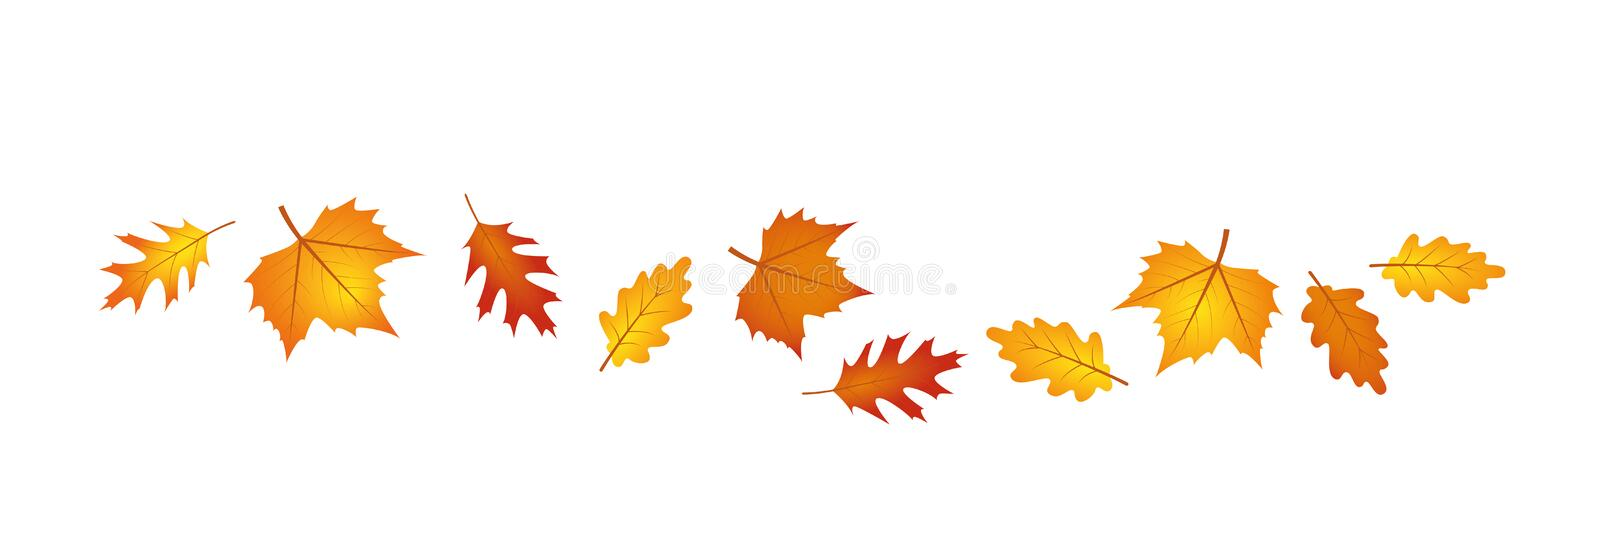 Image result for autumn leaves image